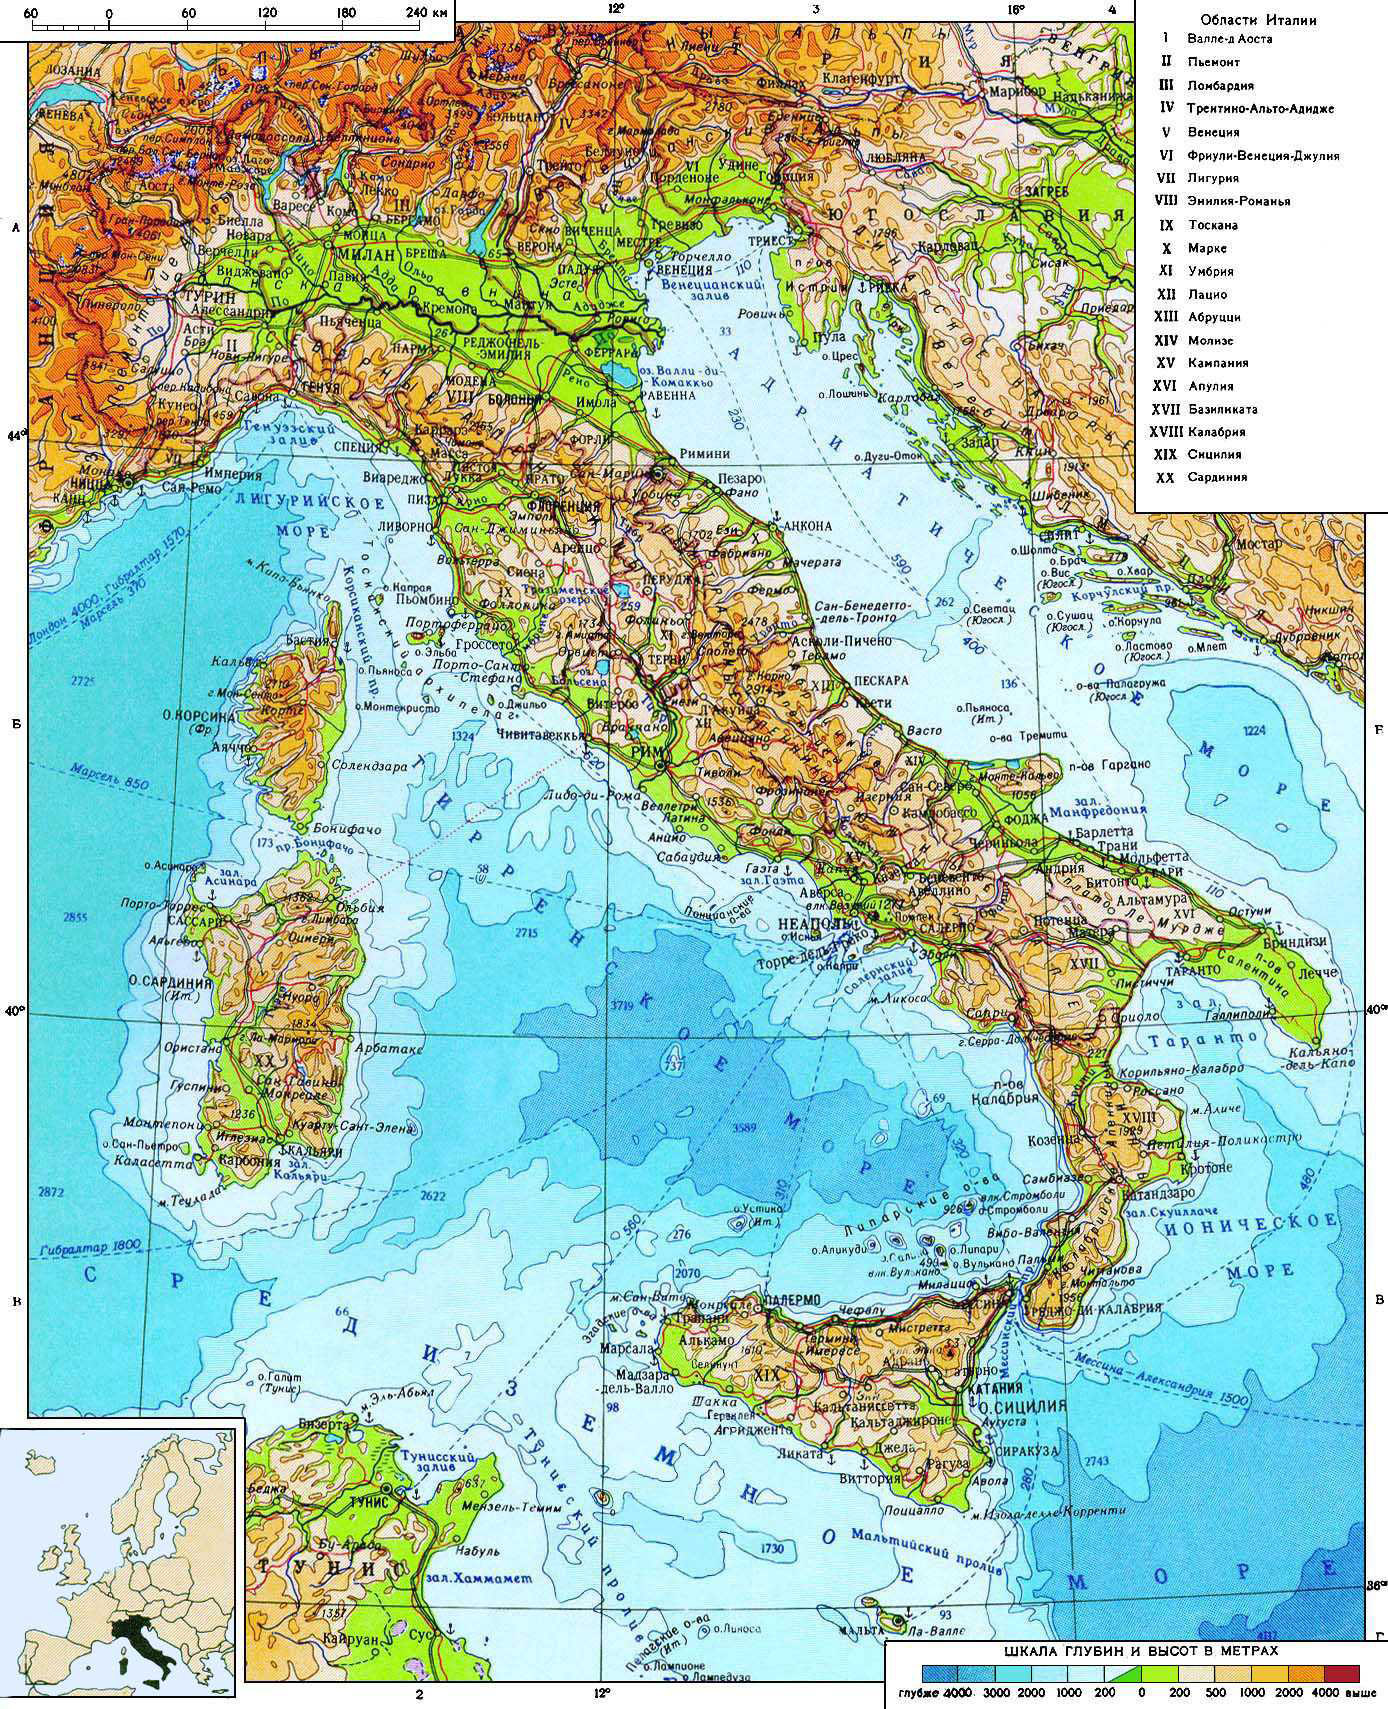 Detailed Physical Map Of Italy Italy Detailed Physical Map - Map of italy physical